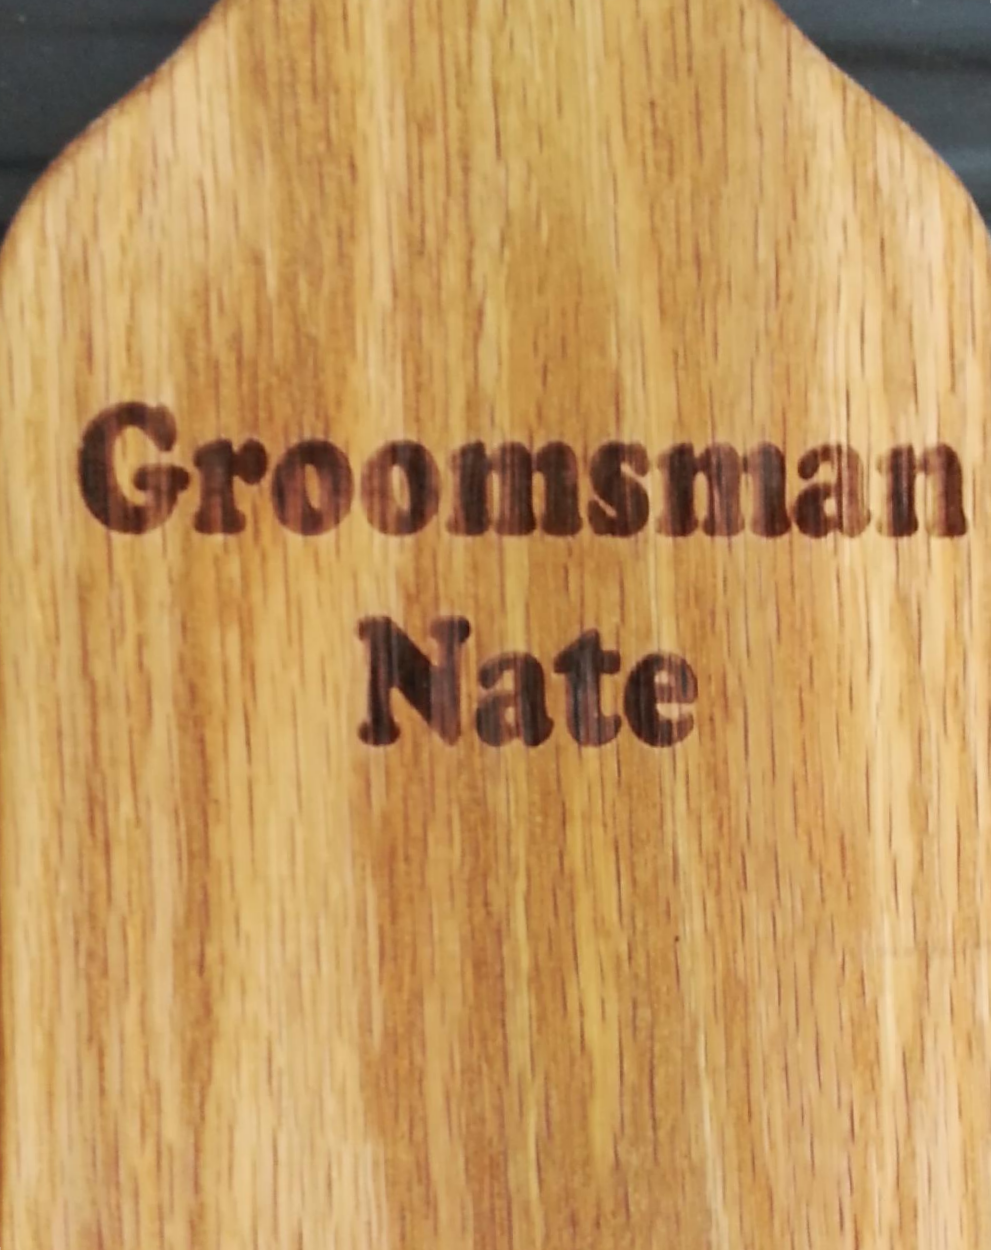 Personalized groomsman example